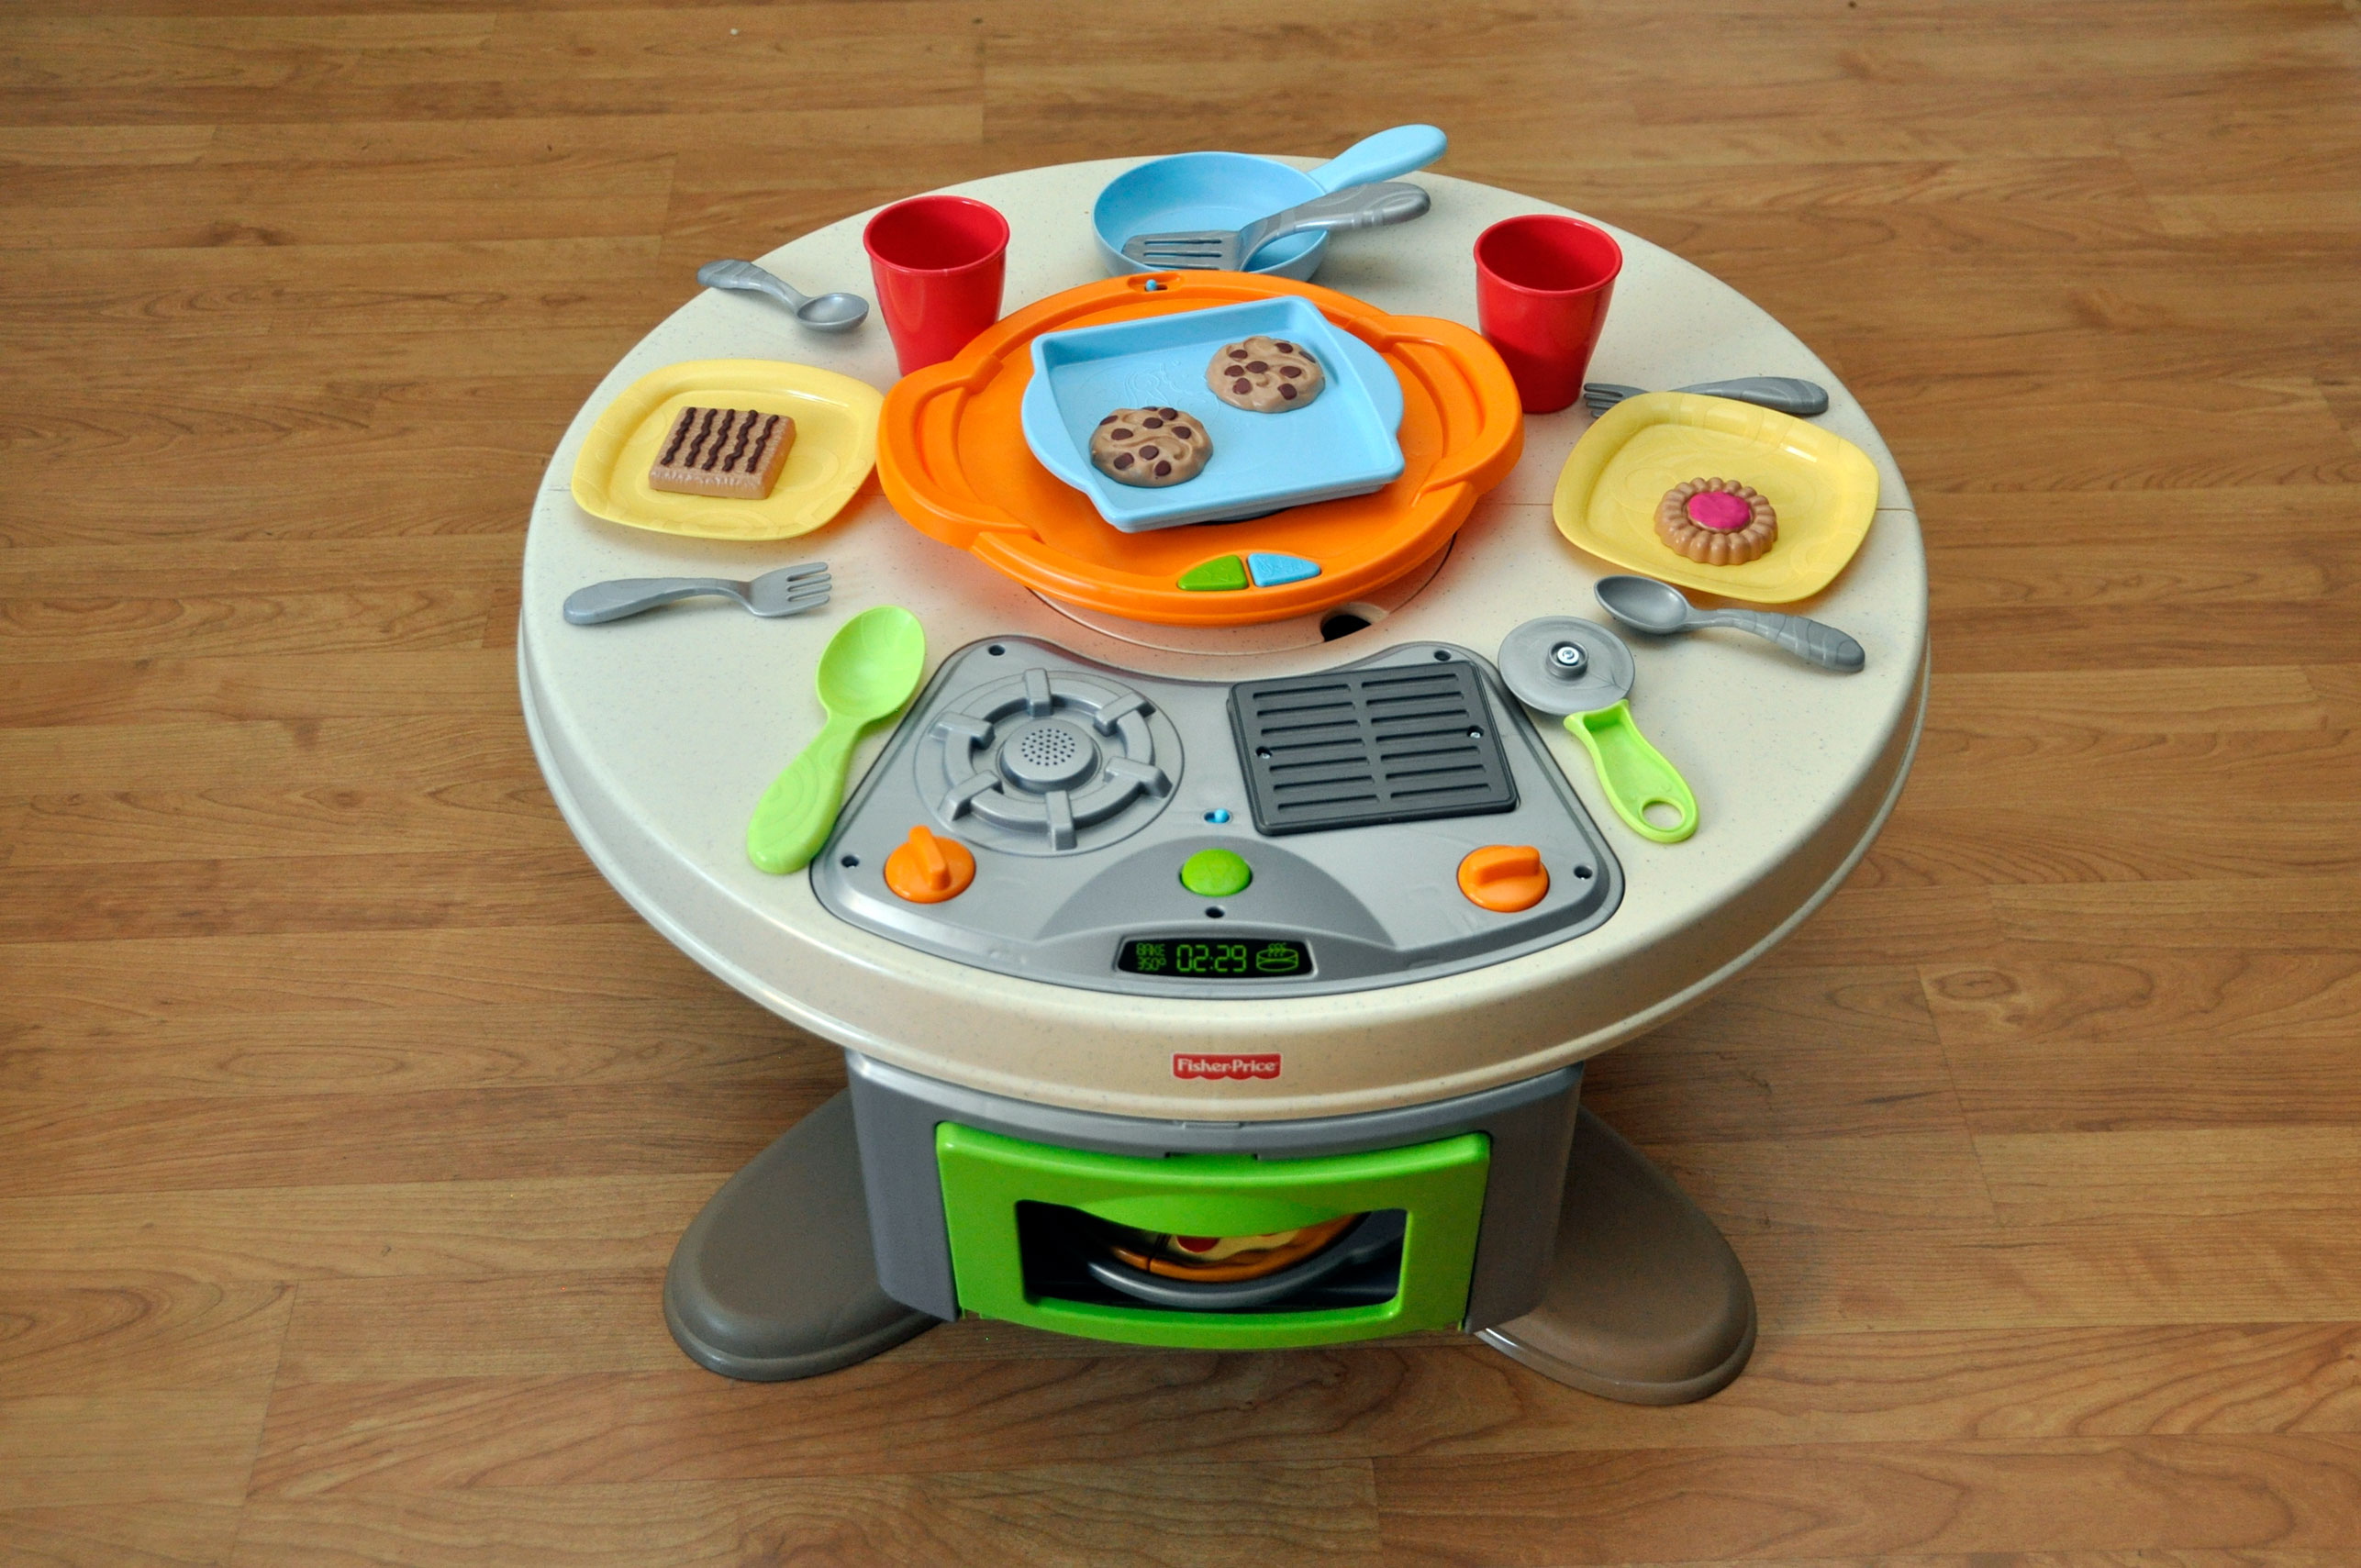 Holiday Gift Guide 2012: Fisher Priceu0027s Servinu0027 Surprises Kitchen U0026 Table